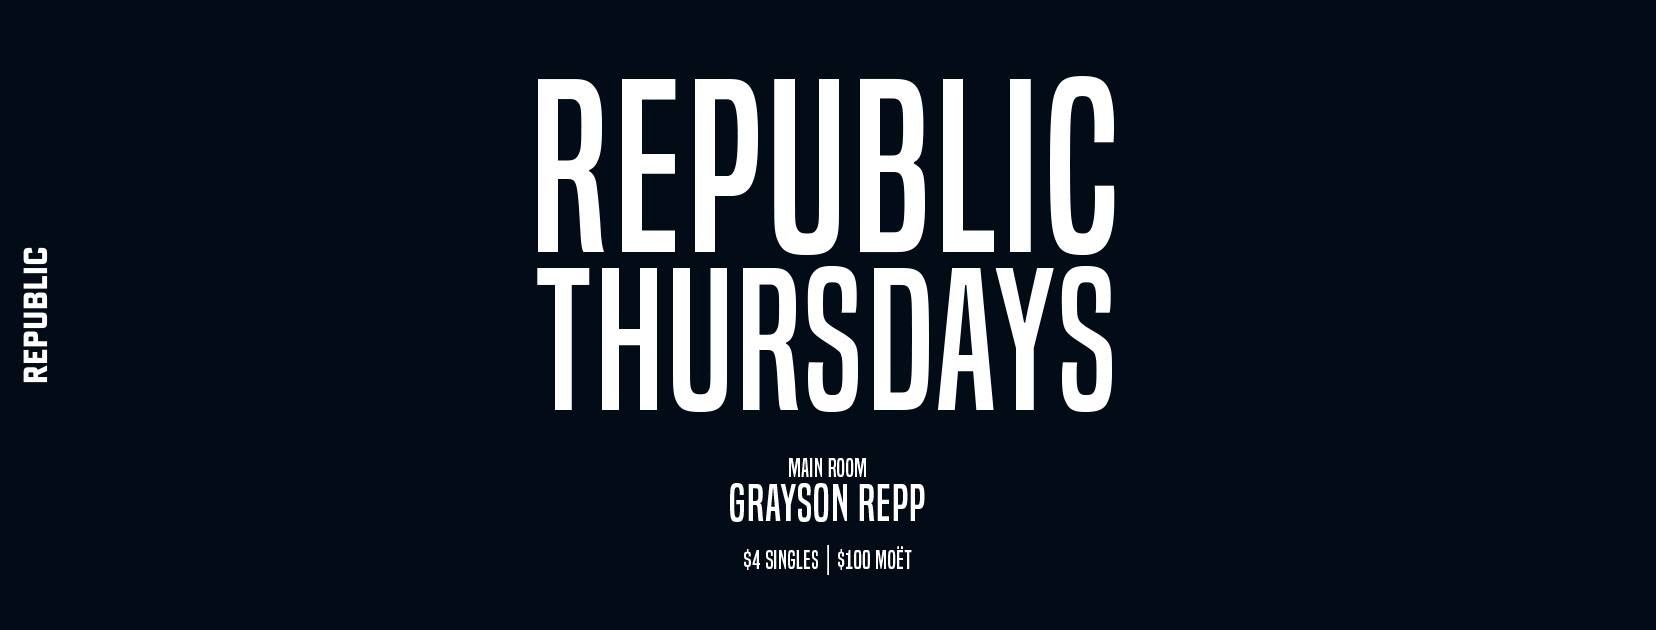 Republic-thursdays